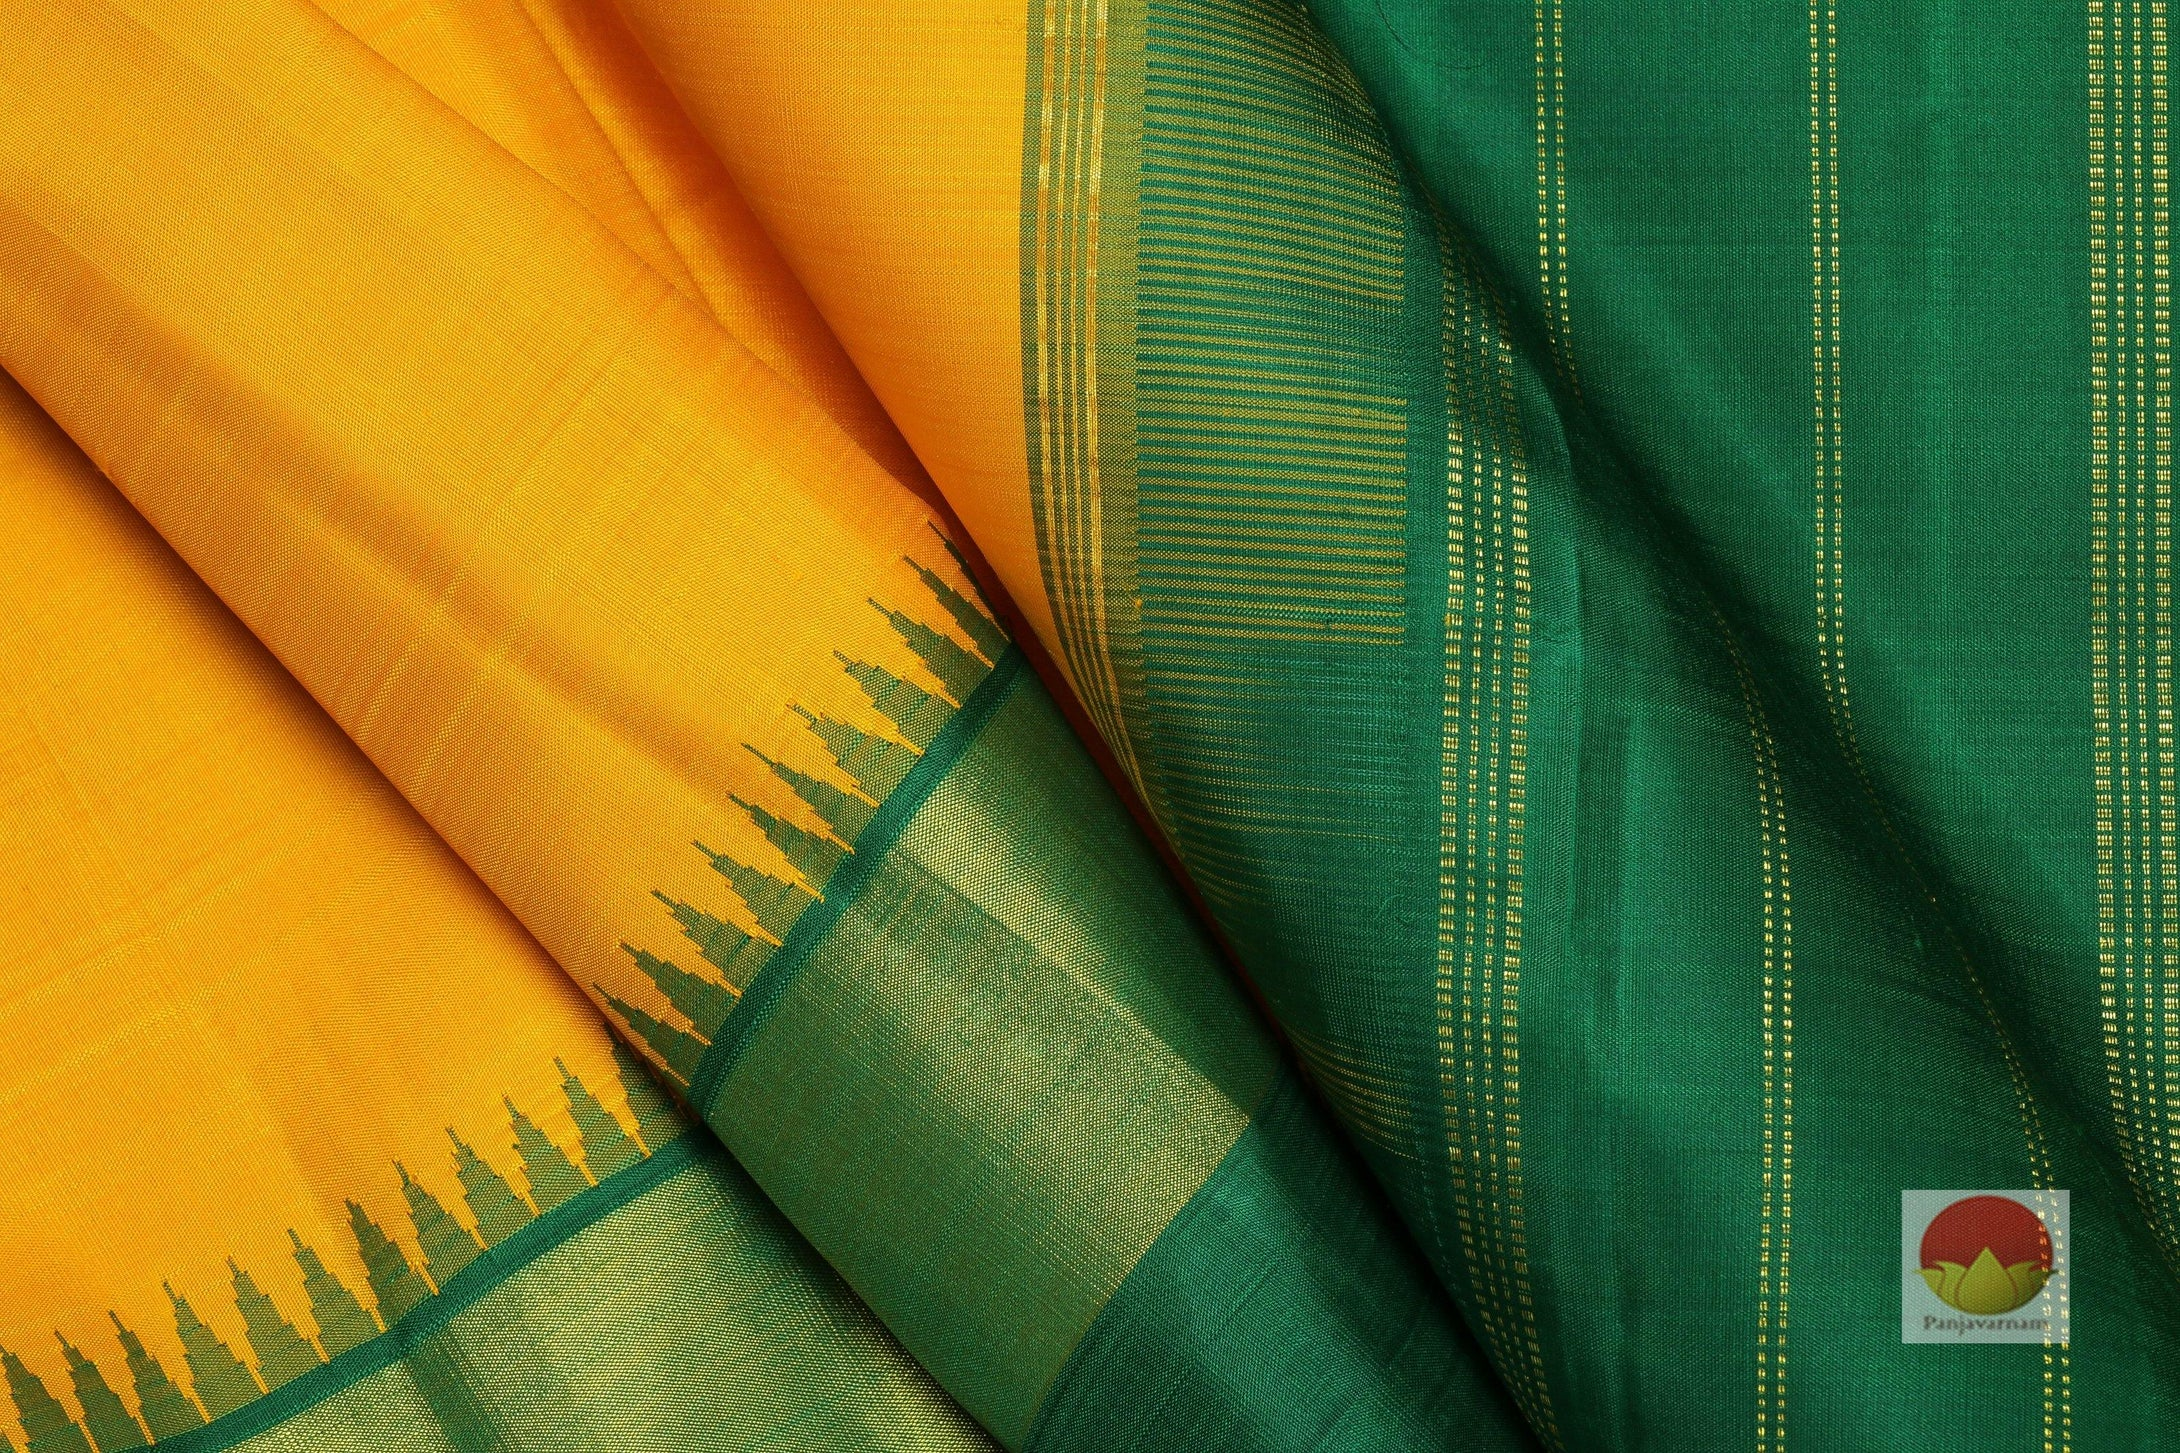 fabric detail of silk yarn in yellow temple border kanjivaram silk saree